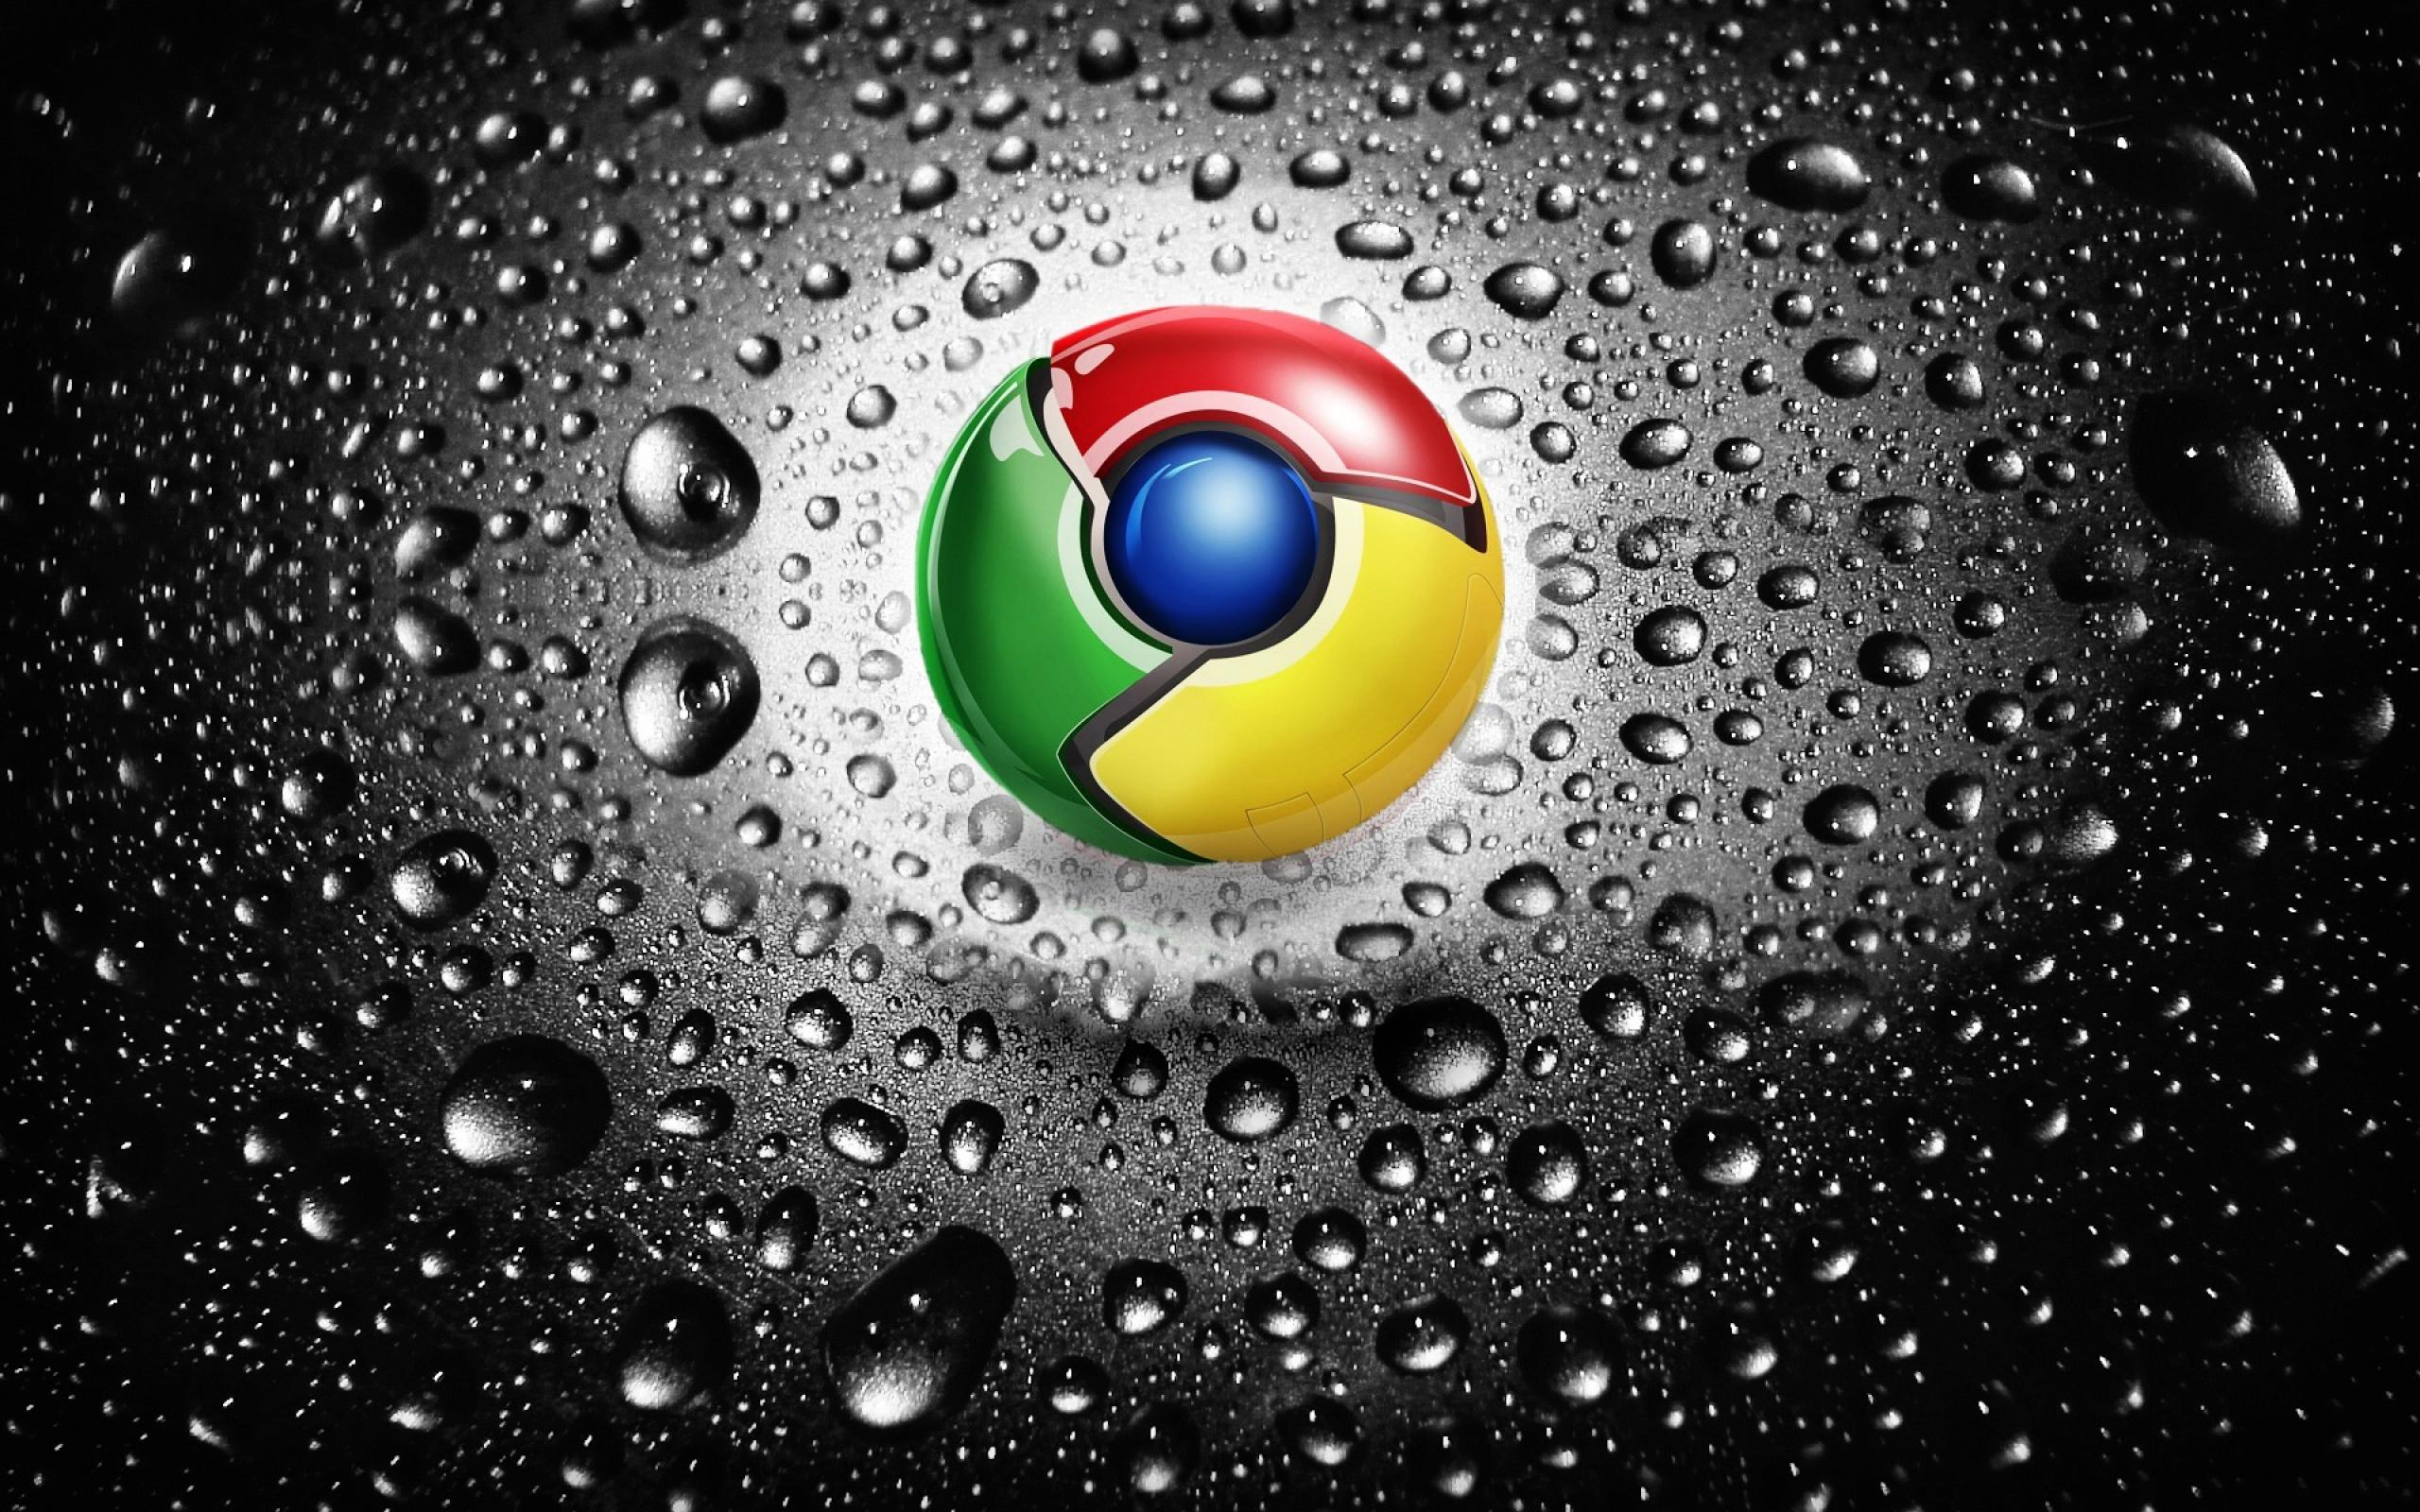 Google Wallpaper HD Images Desktop.